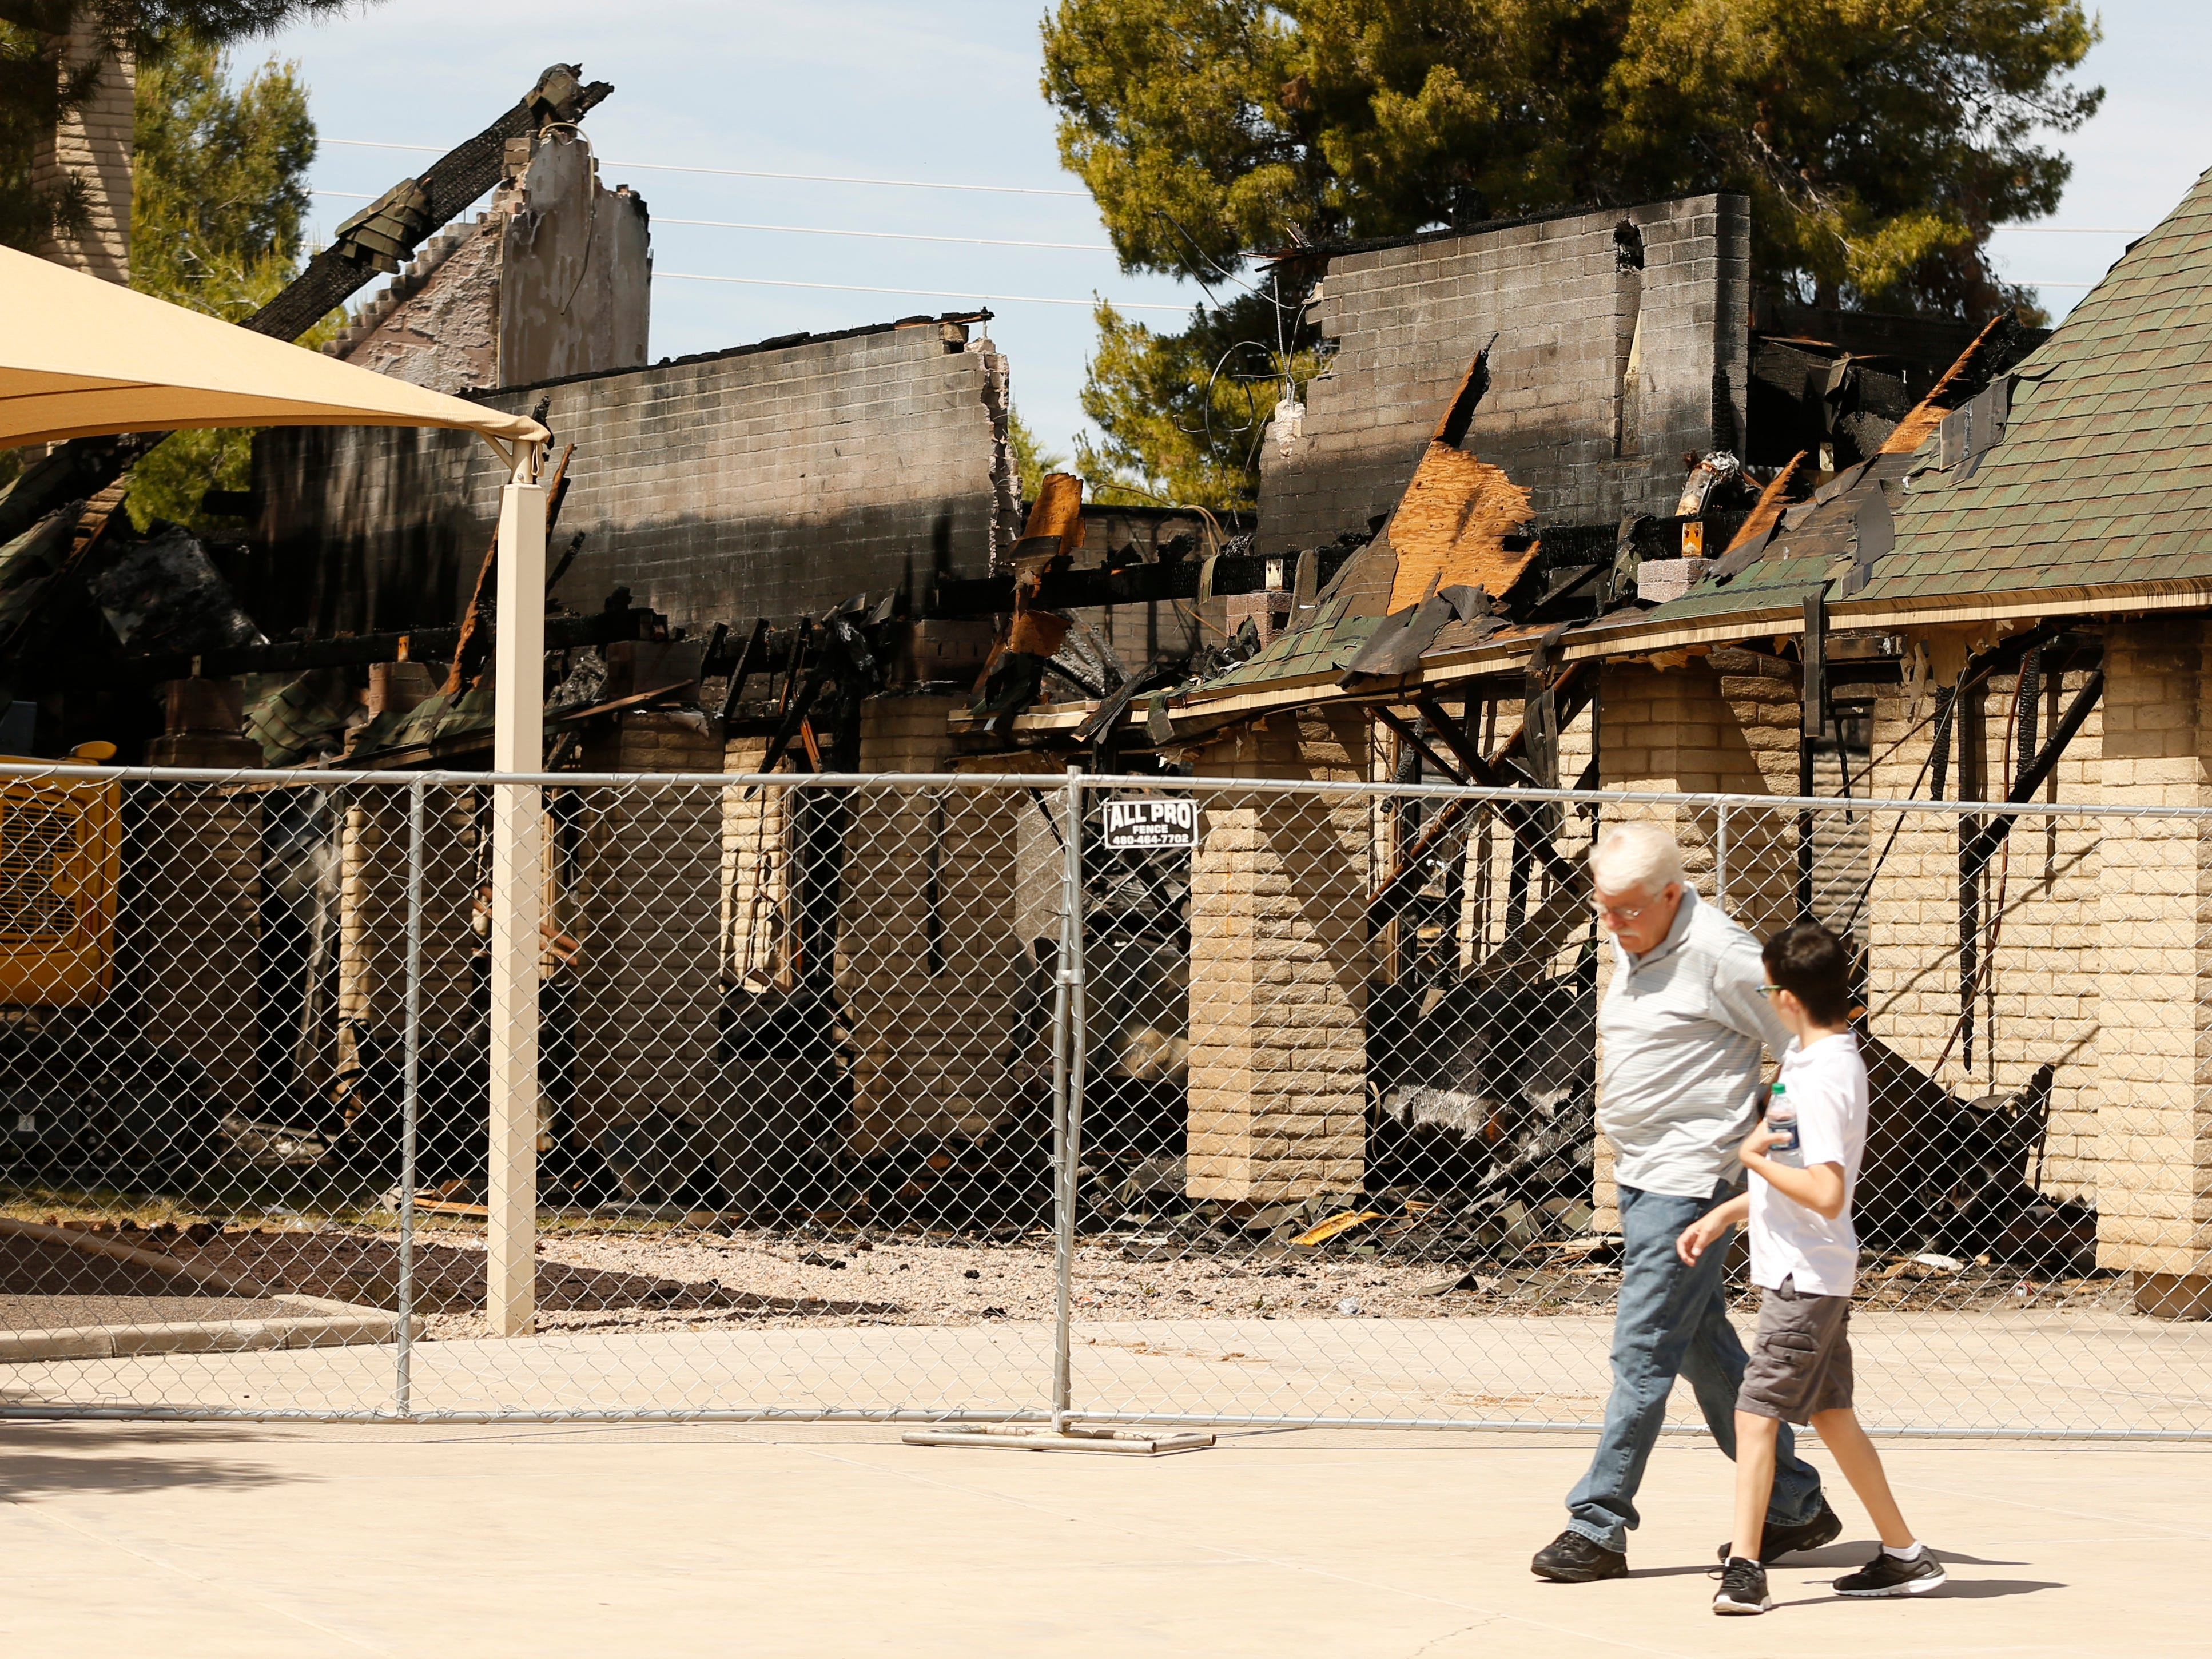 Congregants make their way past the main church after a fire at St. Joseph Catholic Church in Phoenix on May 5, 2019.